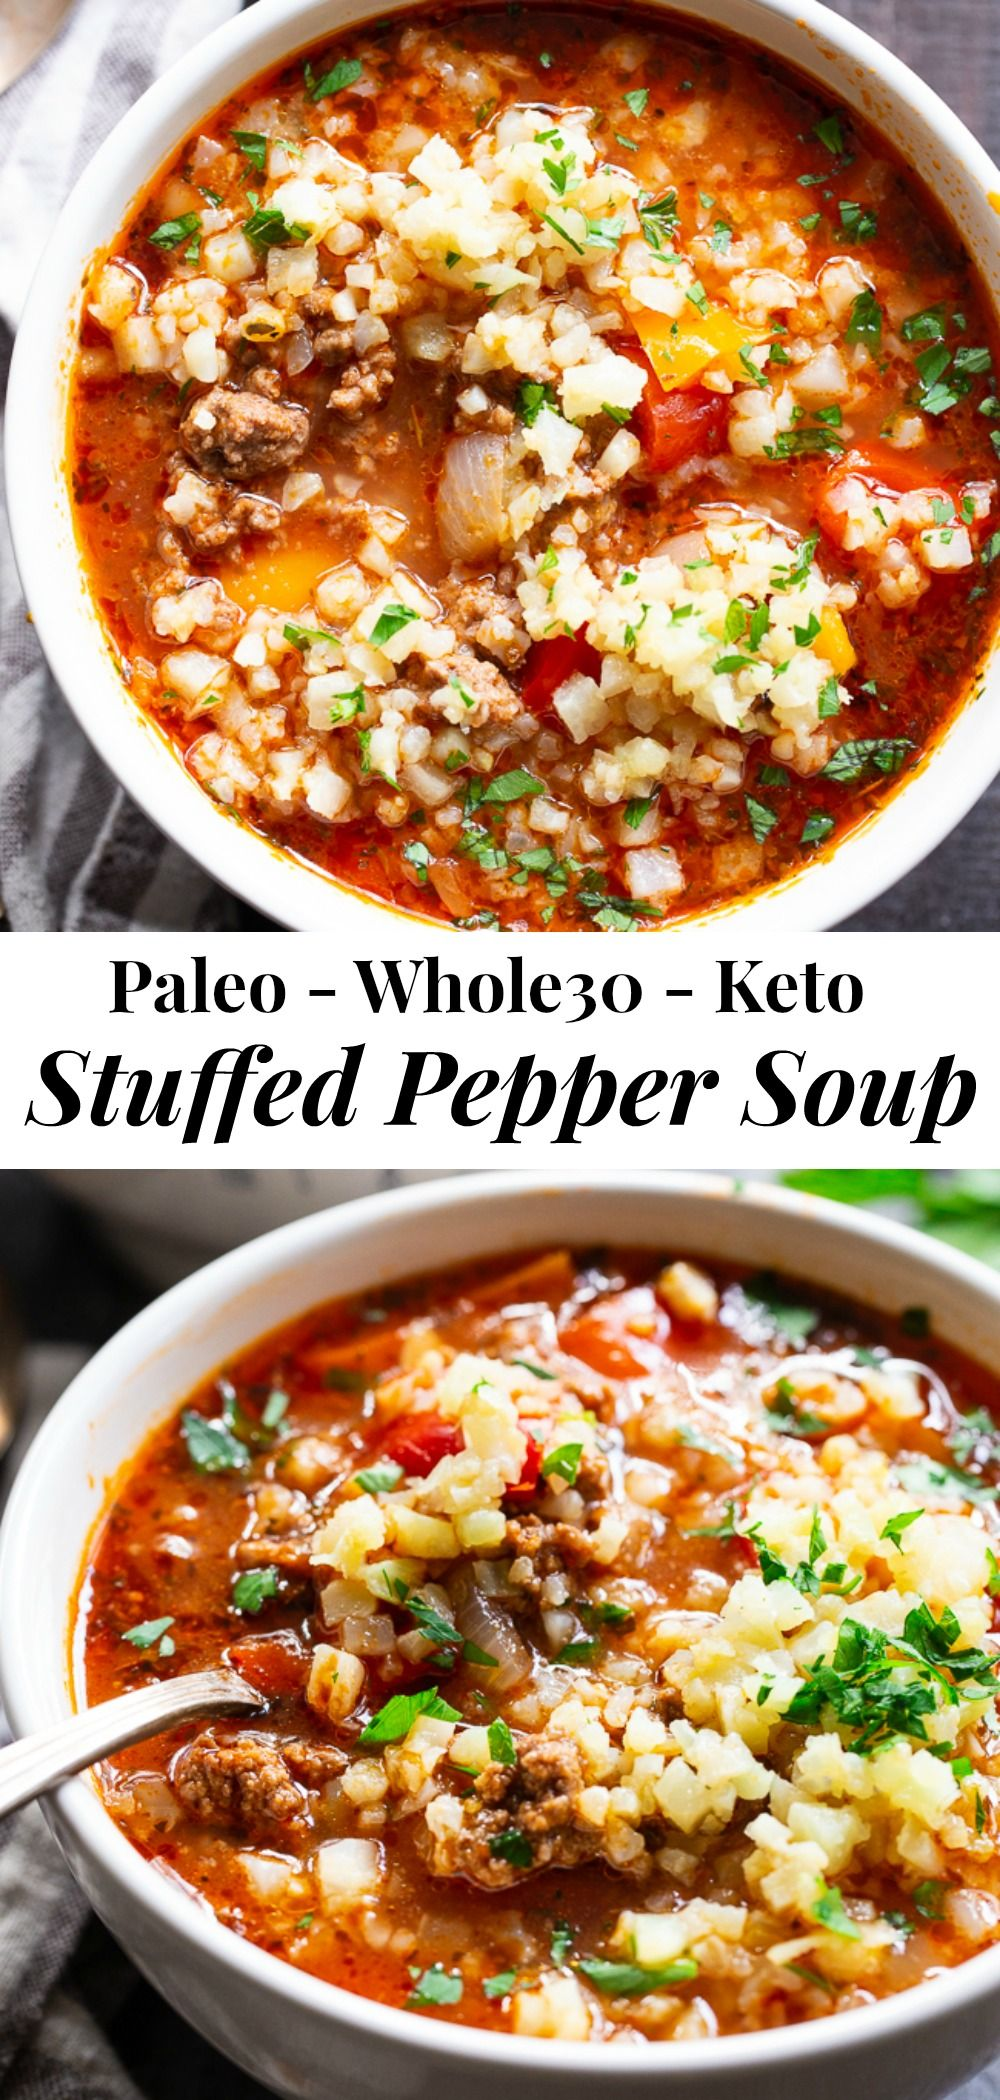 Stuffed Pepper Soup In The Instant Pot Whole30 Keto Recipe In 2020 Stuffed Pepper Soup Stuffed Peppers Dairy Free Soup